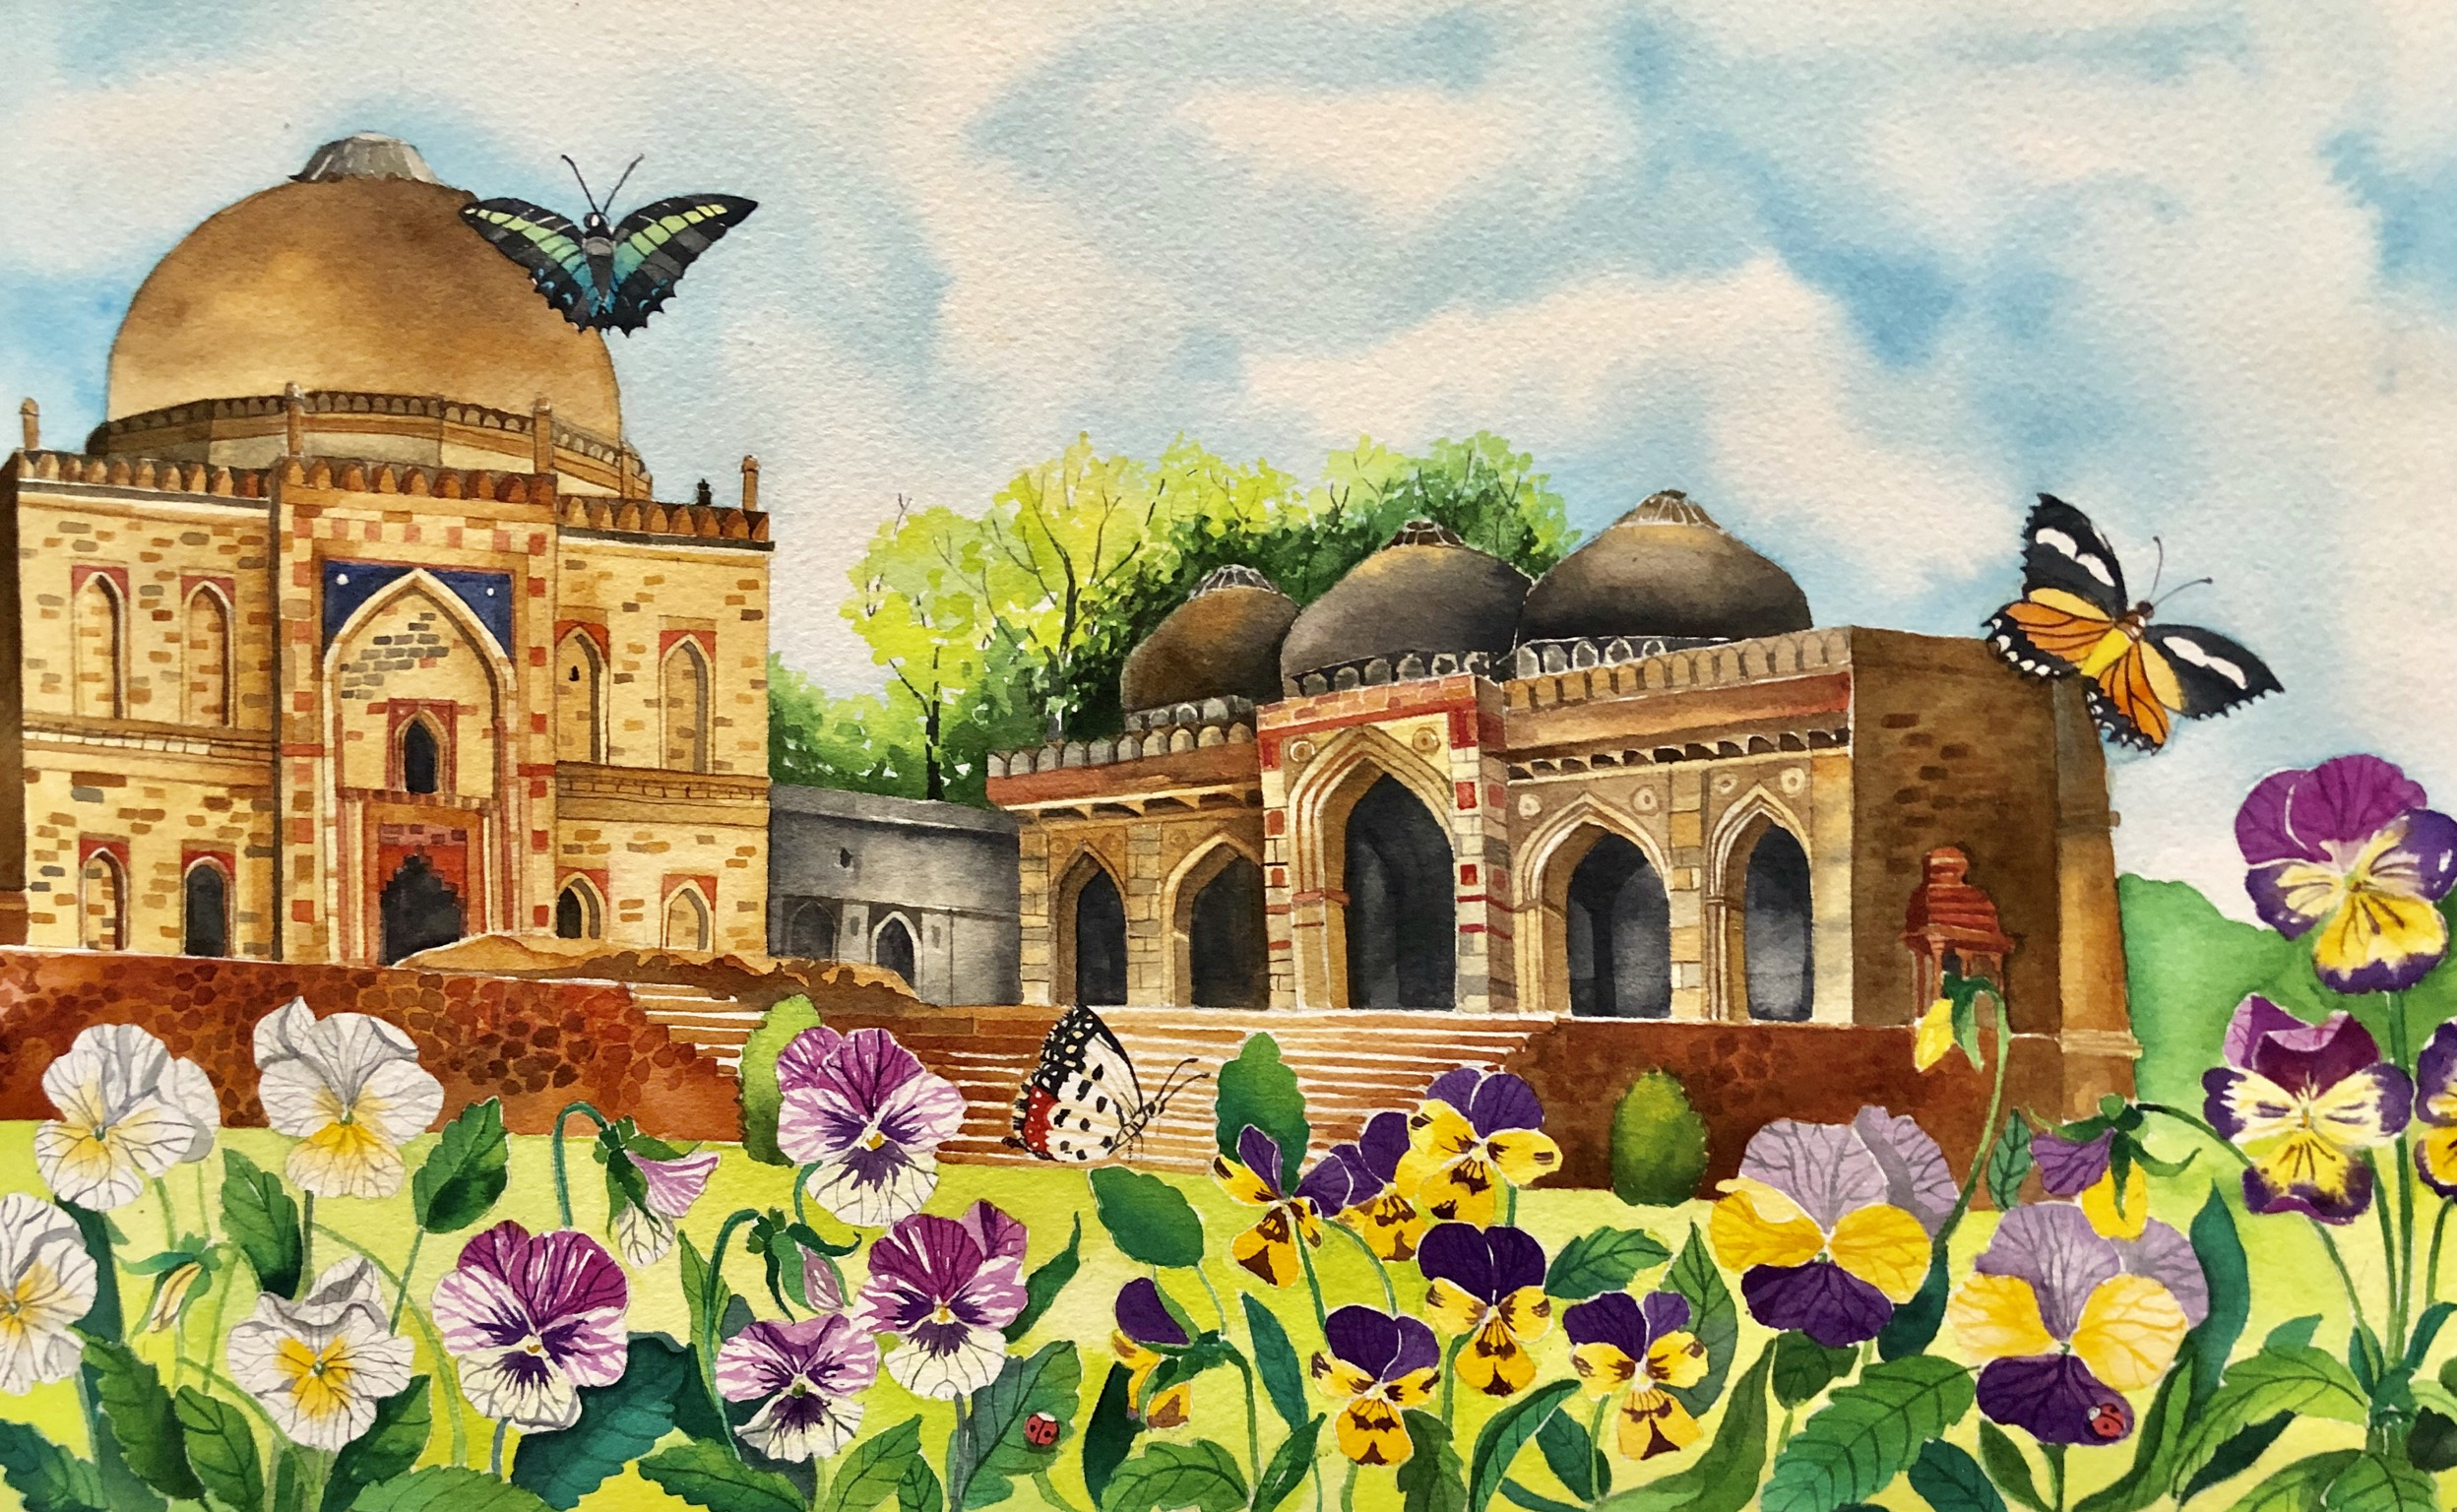 The painting depicts spring in the Lodhi Garden of Delhi. It was accompanied by an Urdu couplet by famous poet, Mit Taqi Mir